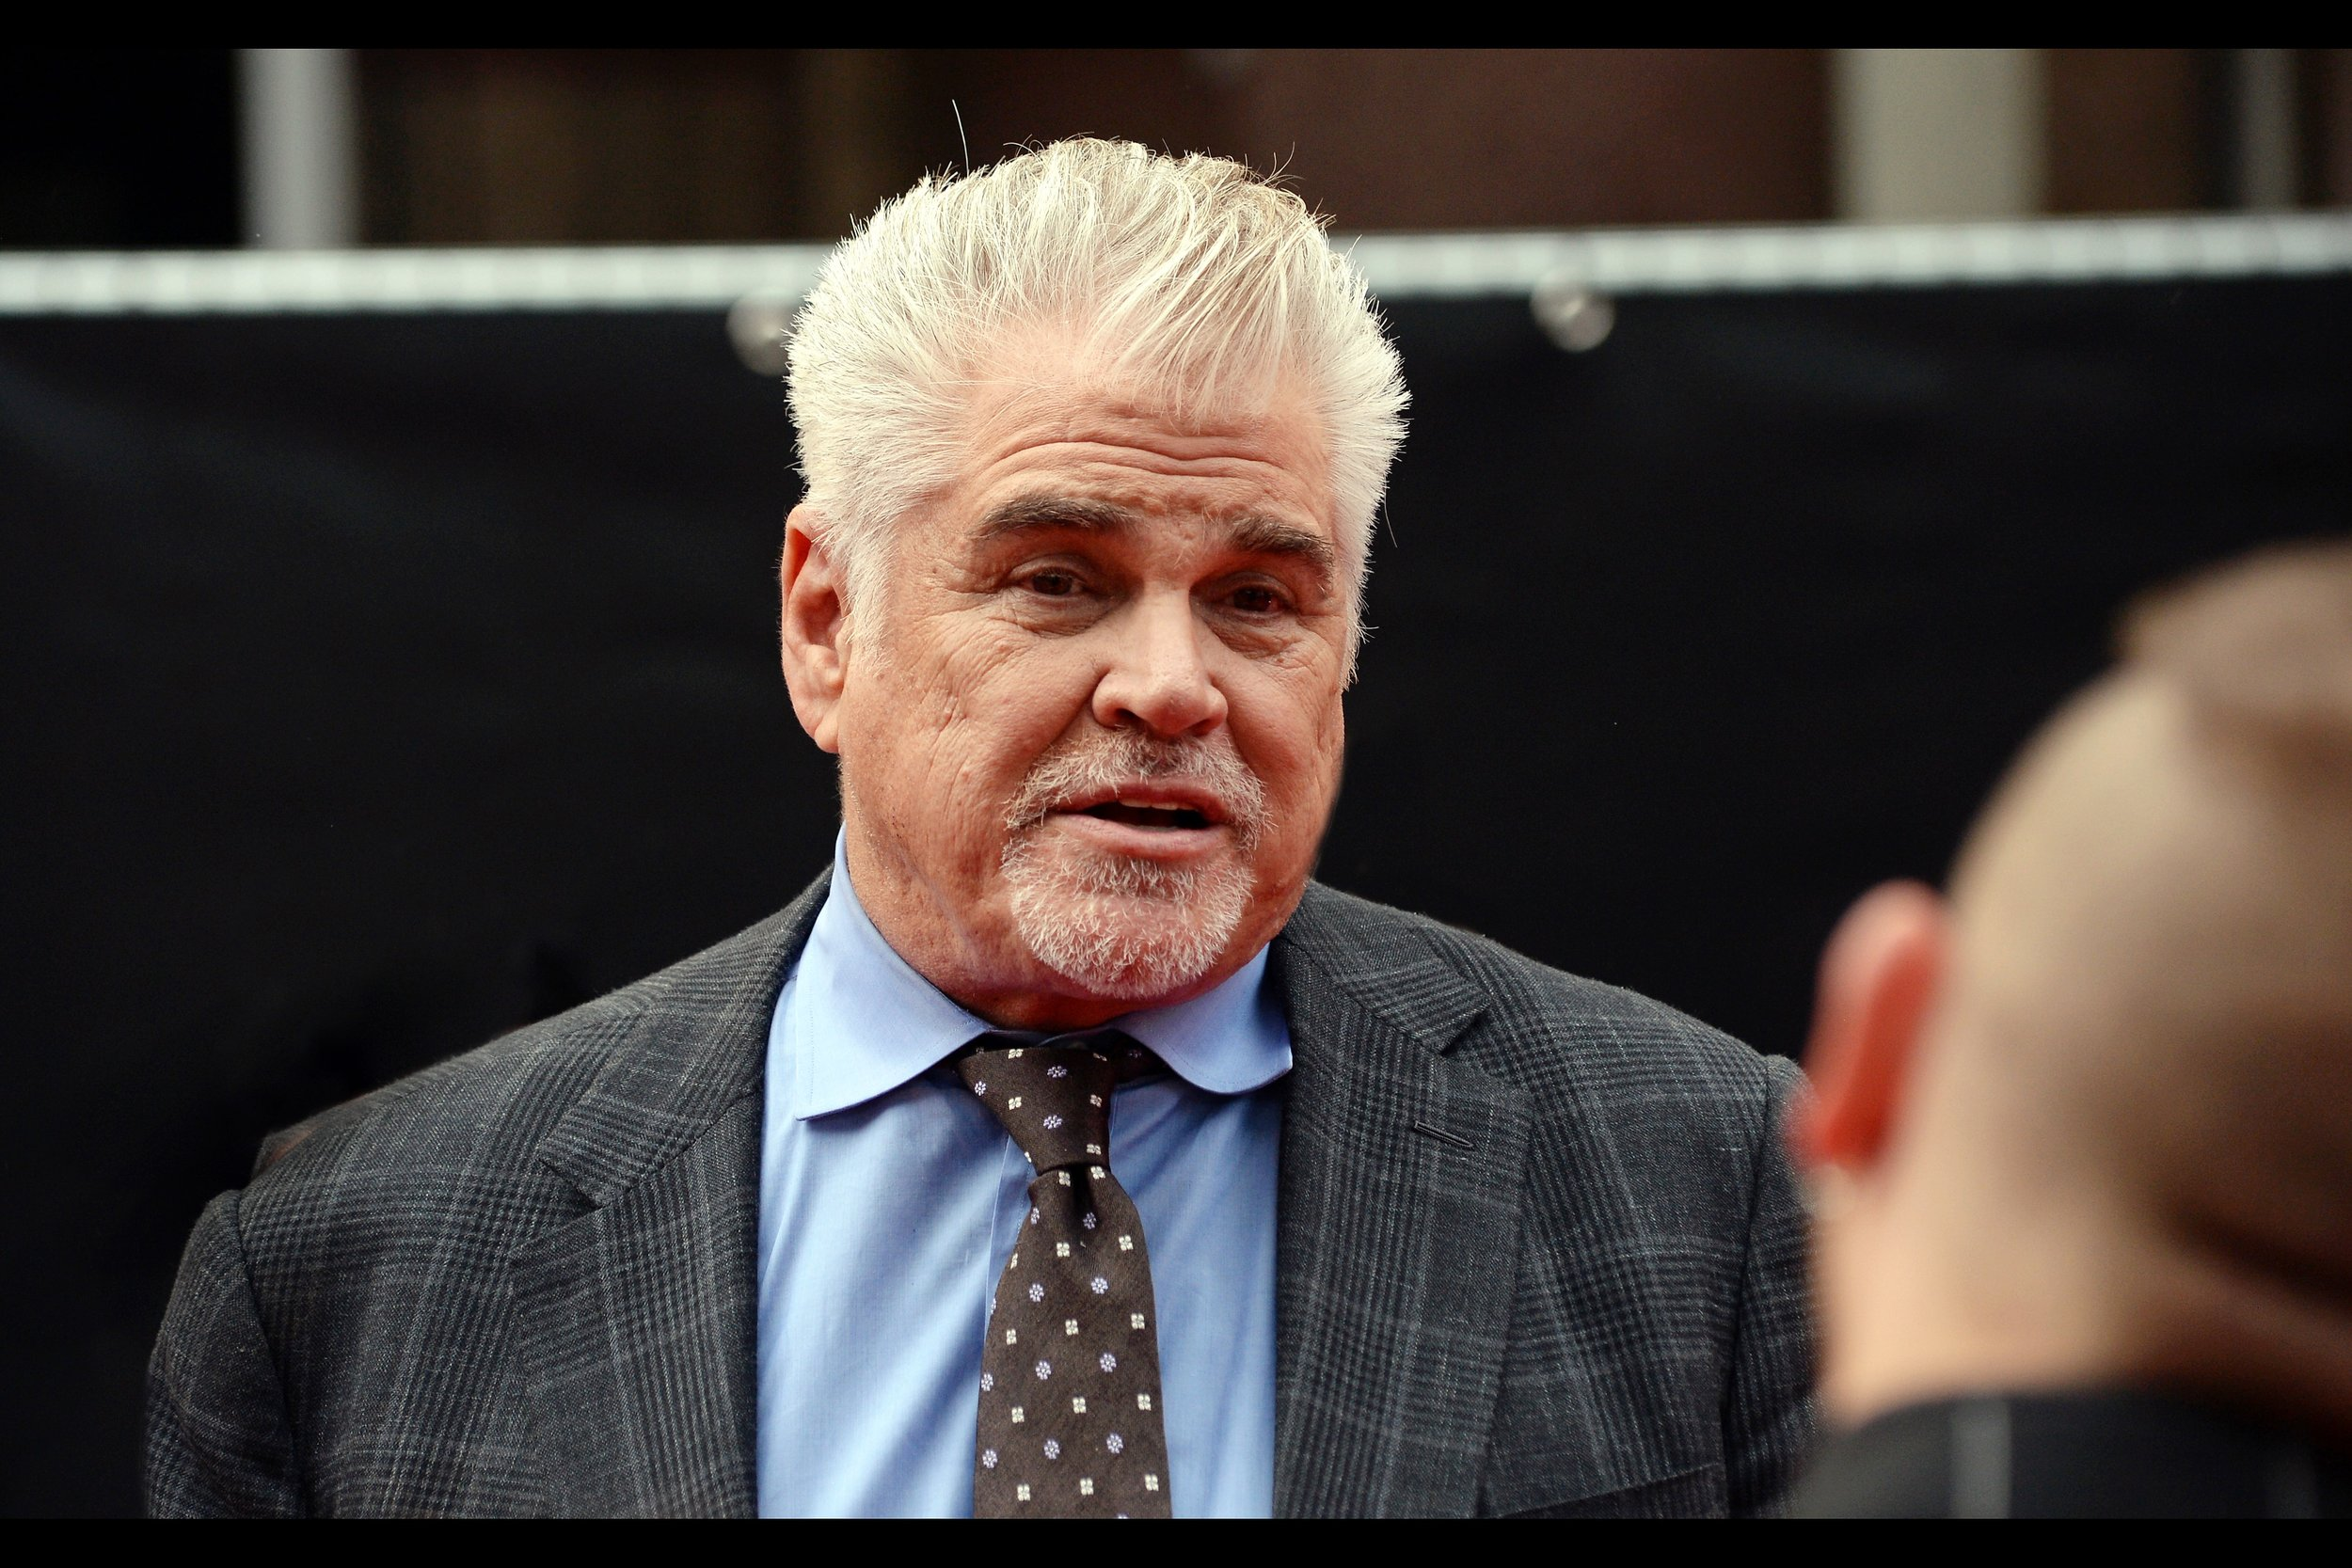 """A look at Gary Ross' imdb page reveals not only that he directed the first movie in the    Hunger Games    franchise, but has been nominated for FOUR Academy Awards - three for writing (including the 1986 movie """"Big"""" starring Tom Hanks) and one for Directing."""